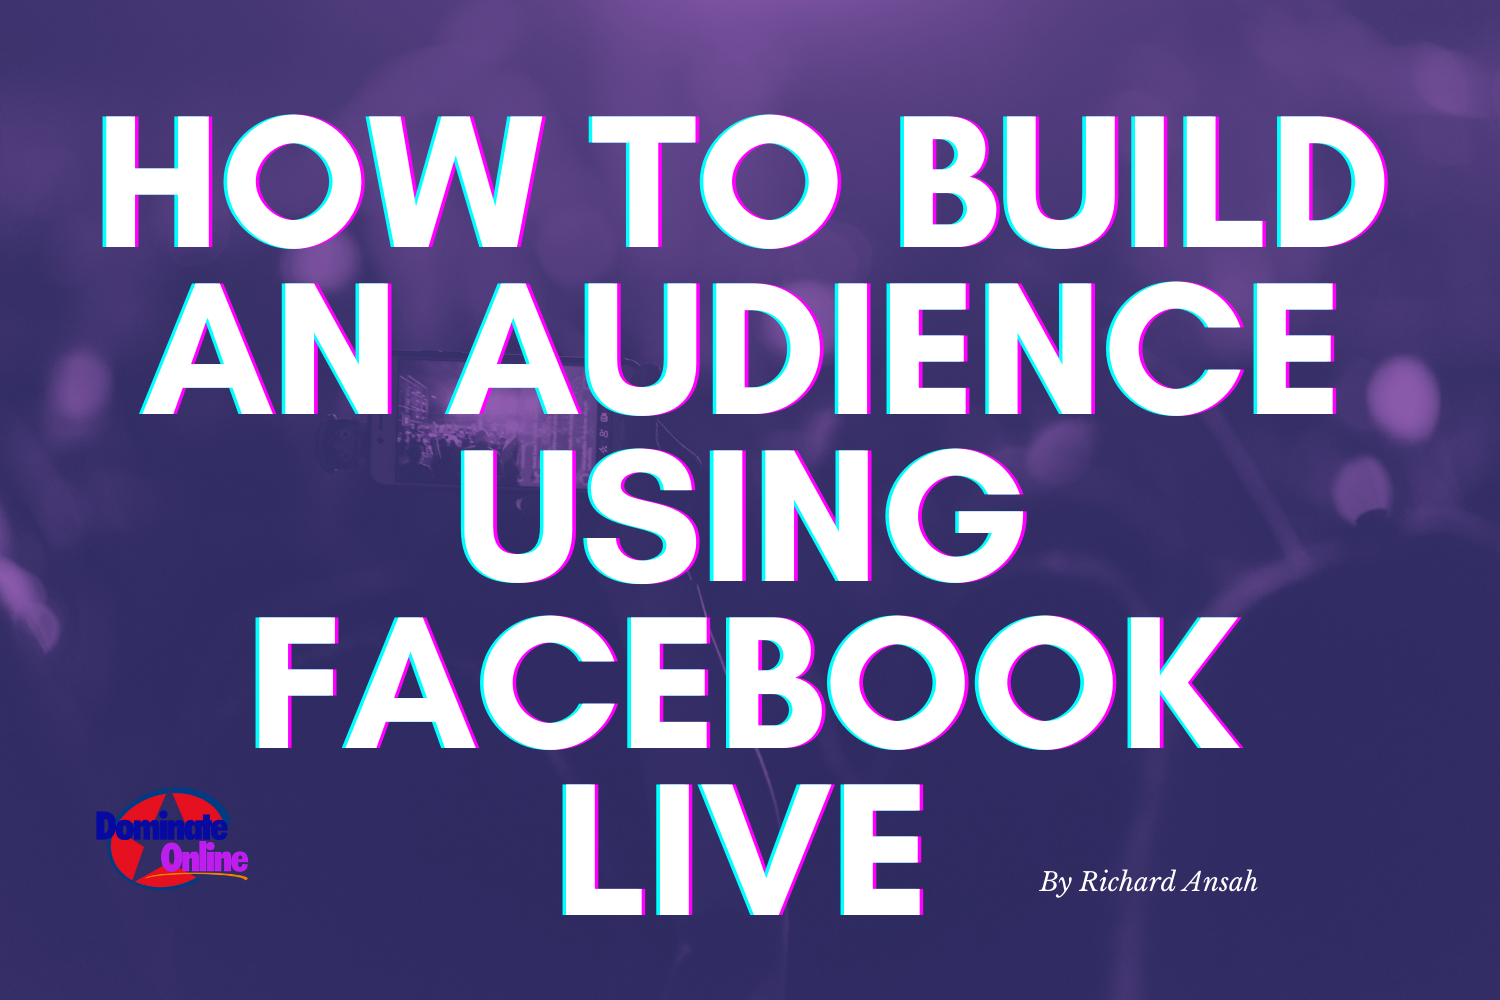 How to build an audience using facebook live